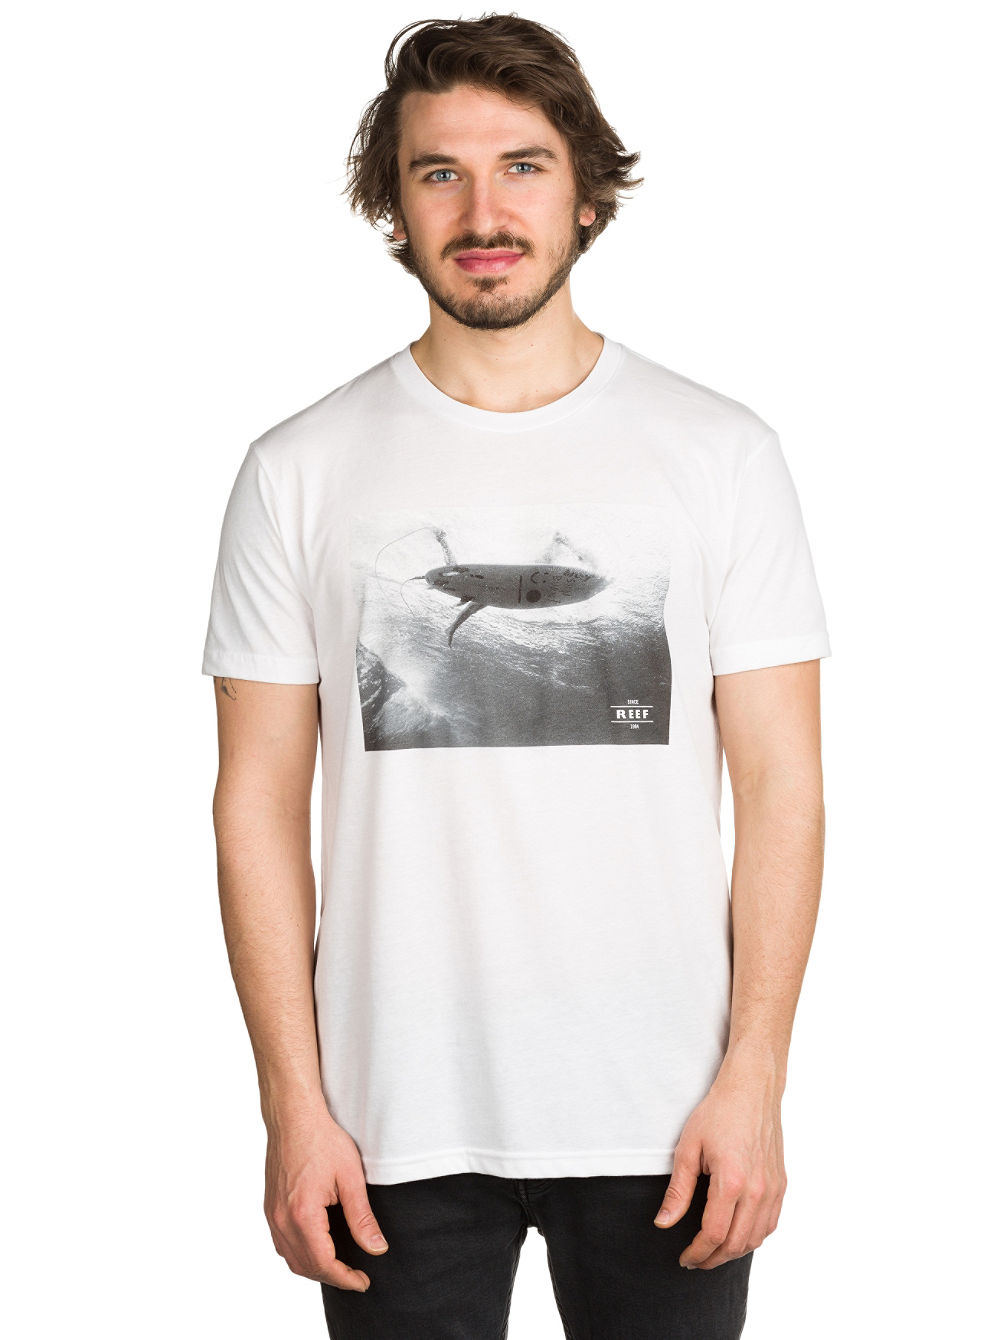 reef-experience-t-shirt